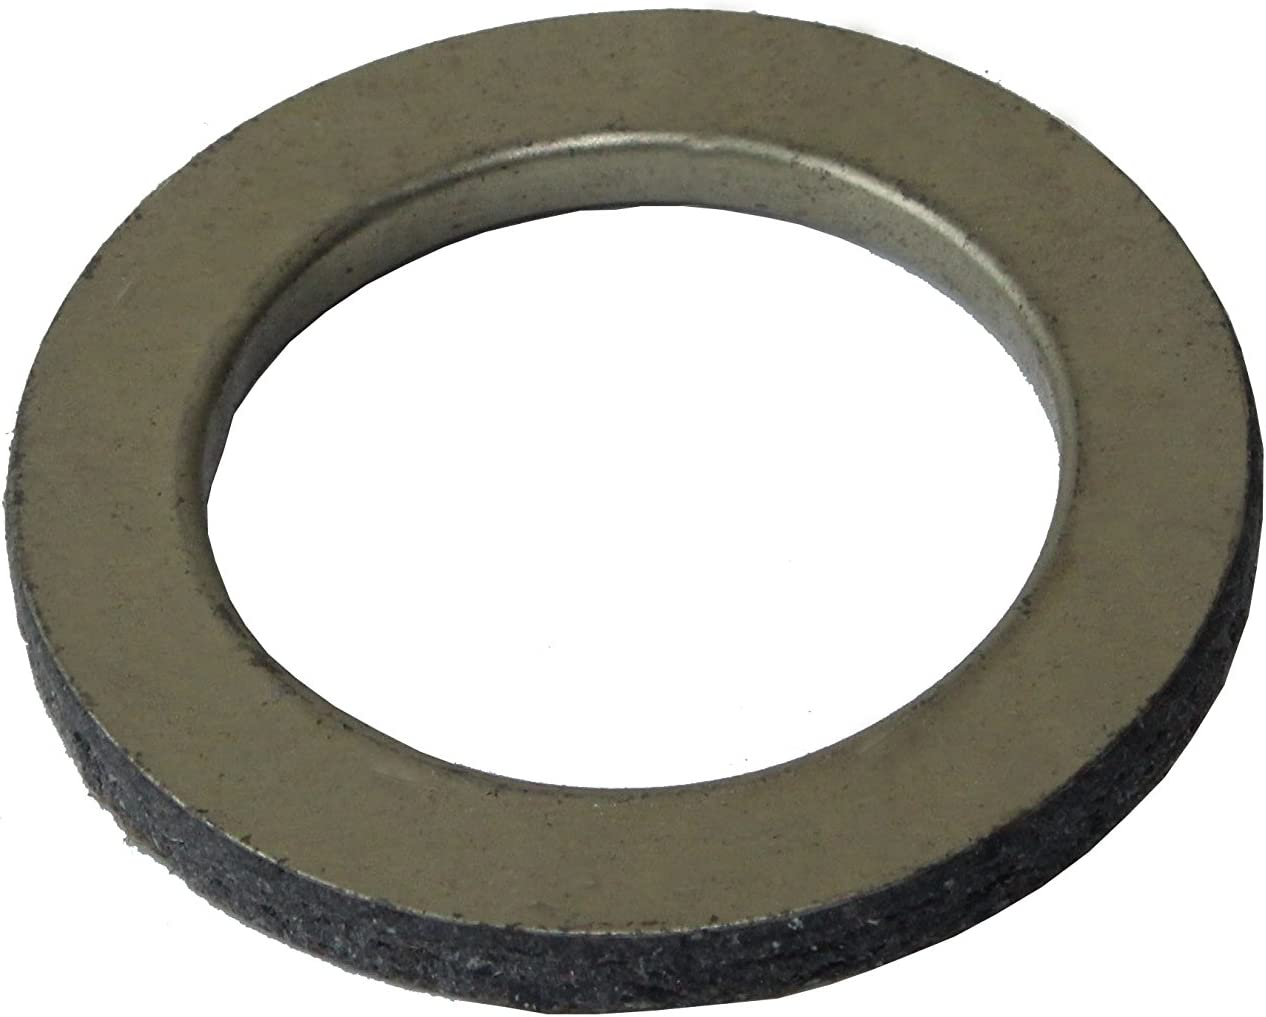 Exhaust Gasket for CF250 250cc Water Cooled Scooter Moped Go Kart Honda Helix CN250